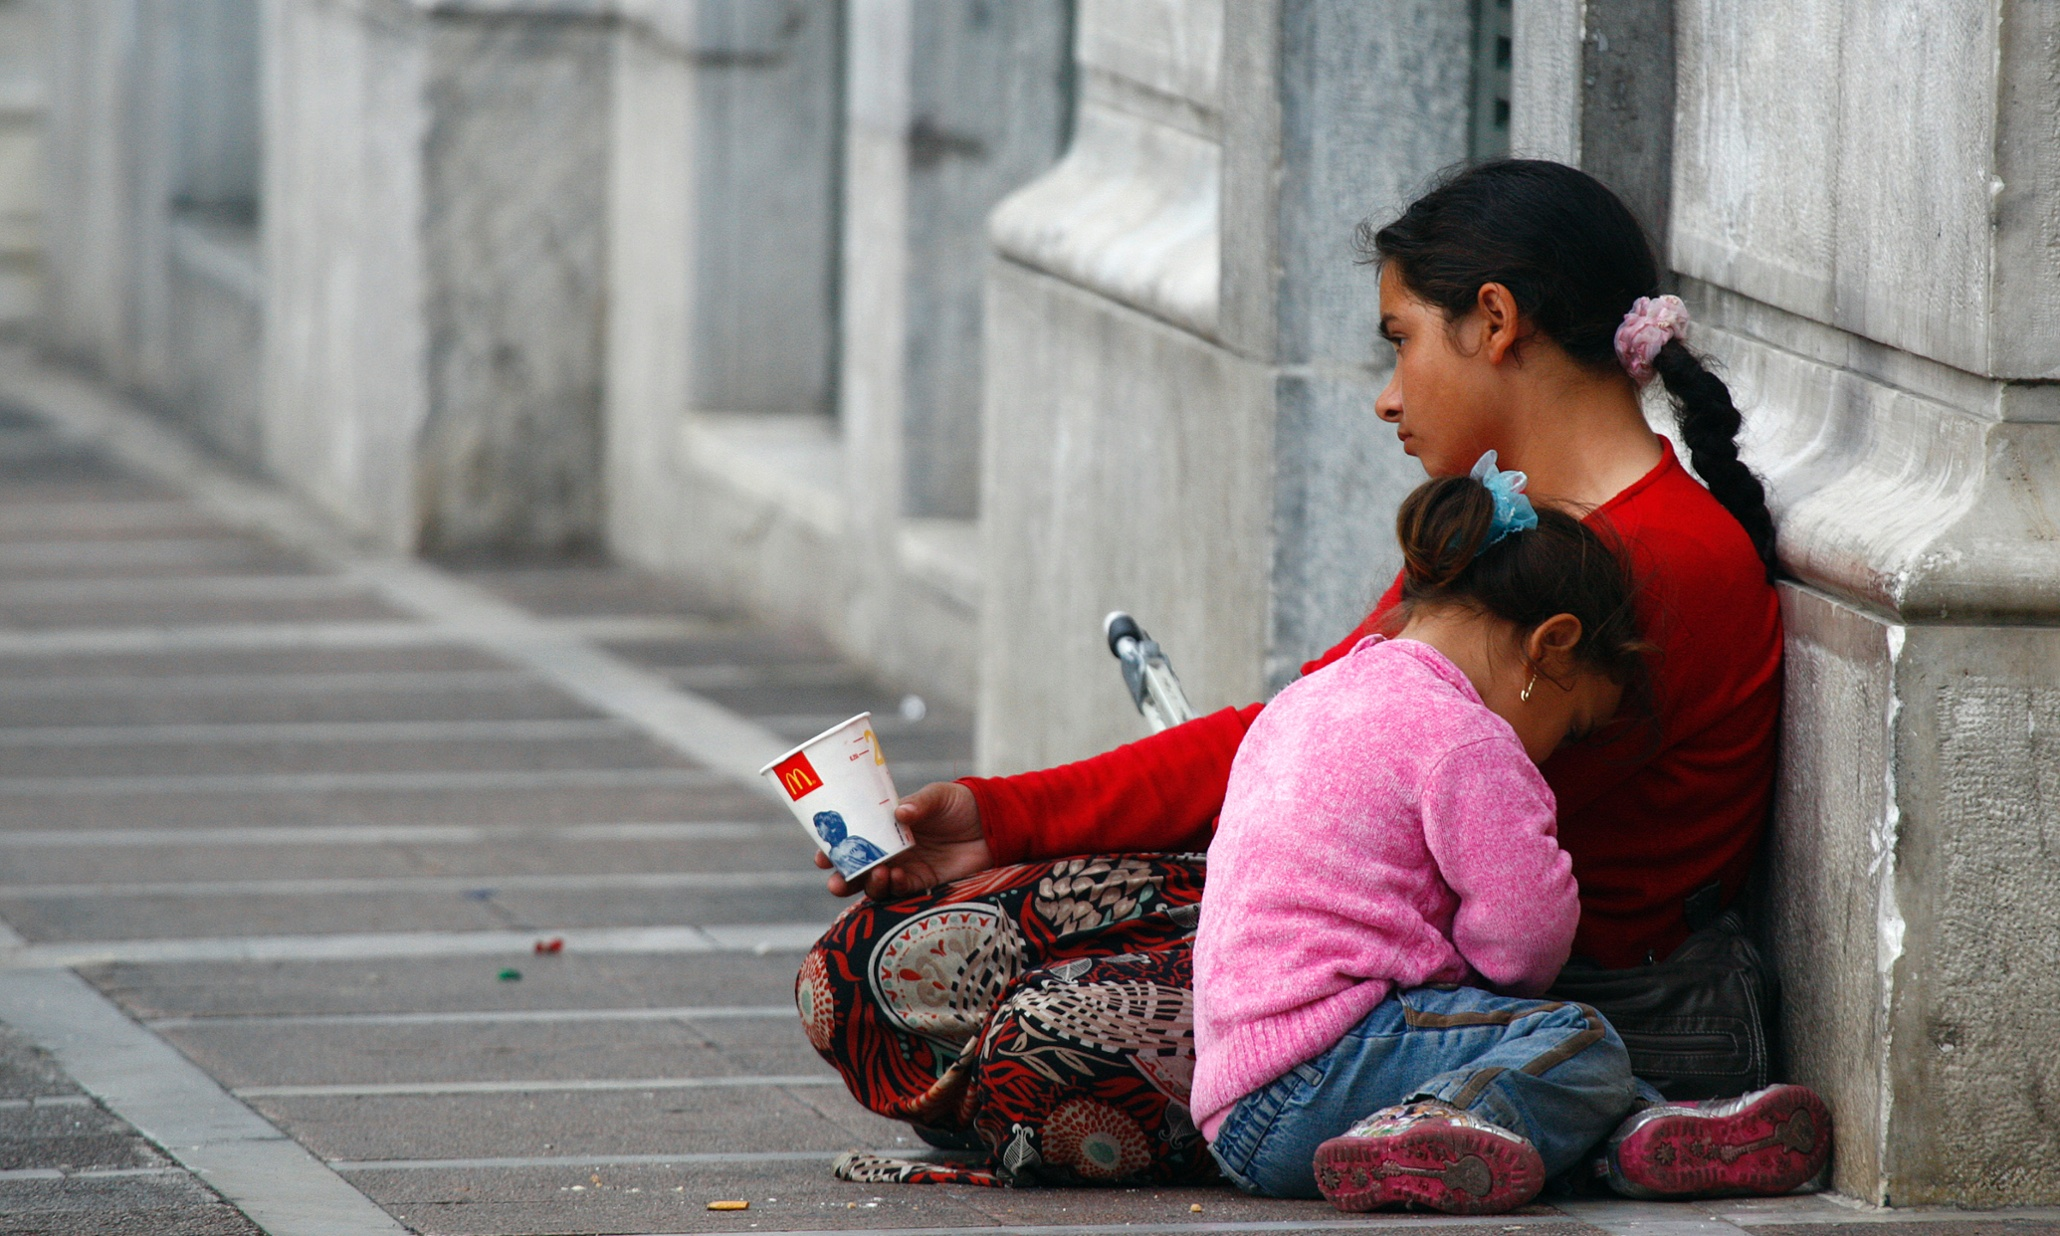 Child poverty up in more than half of developed world ...